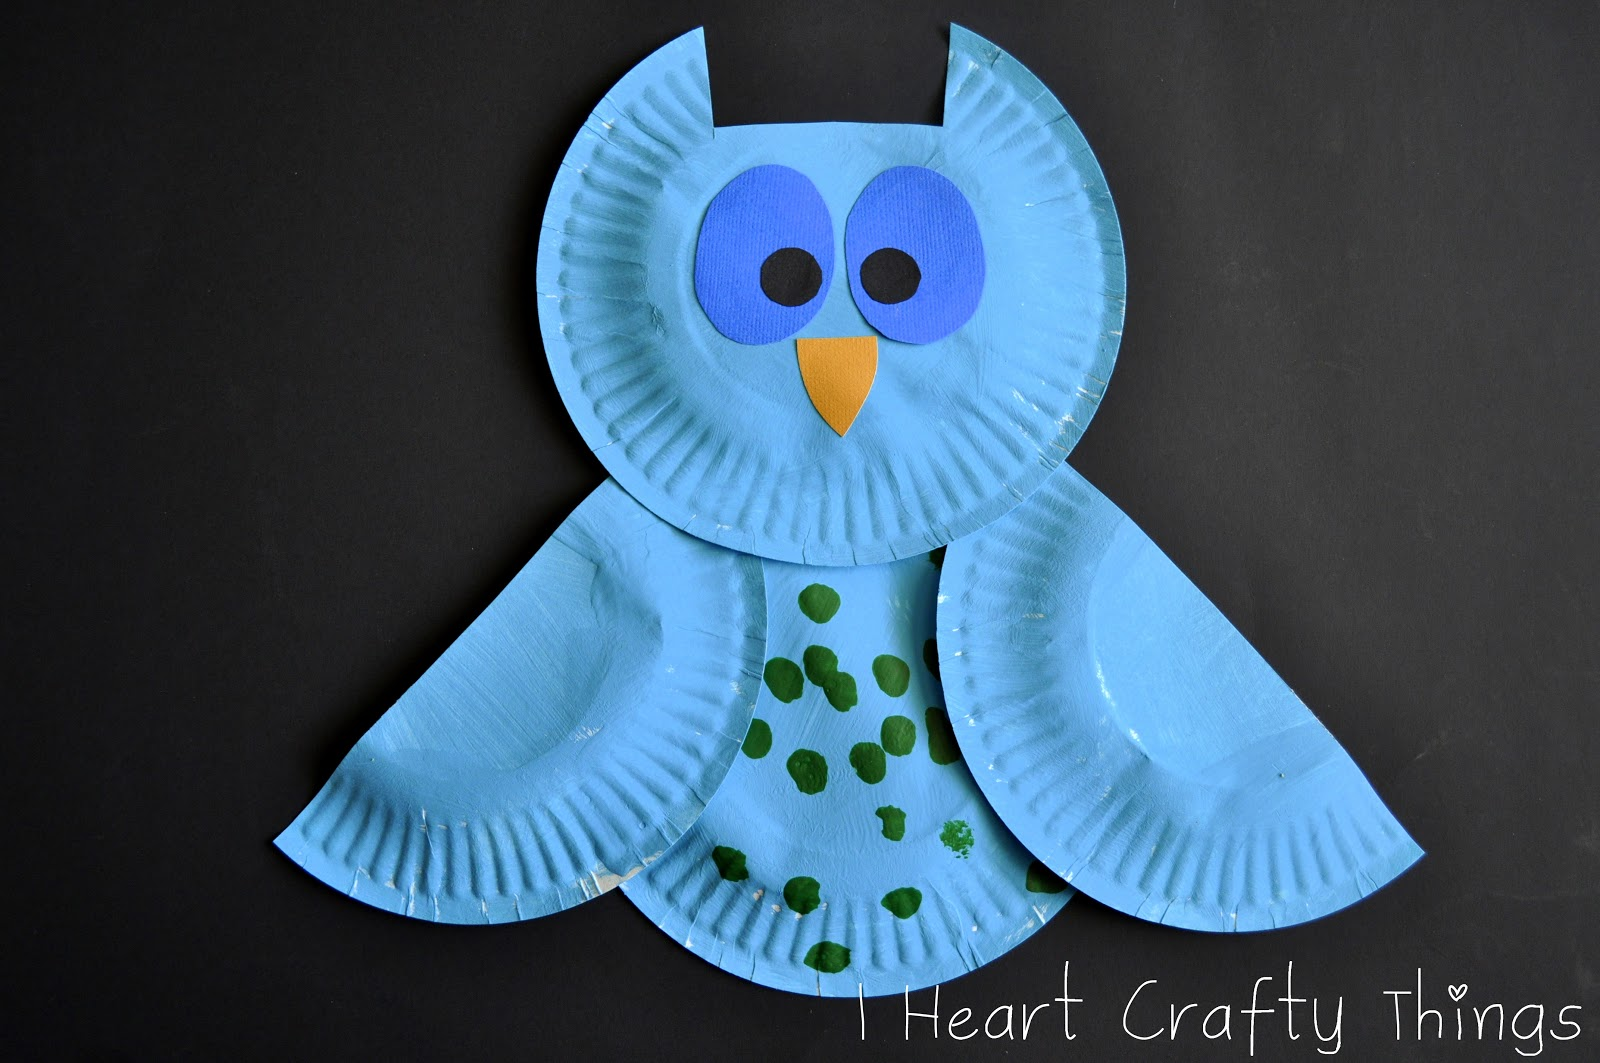 & Colorful Patterned Owls | I Heart Crafty Things